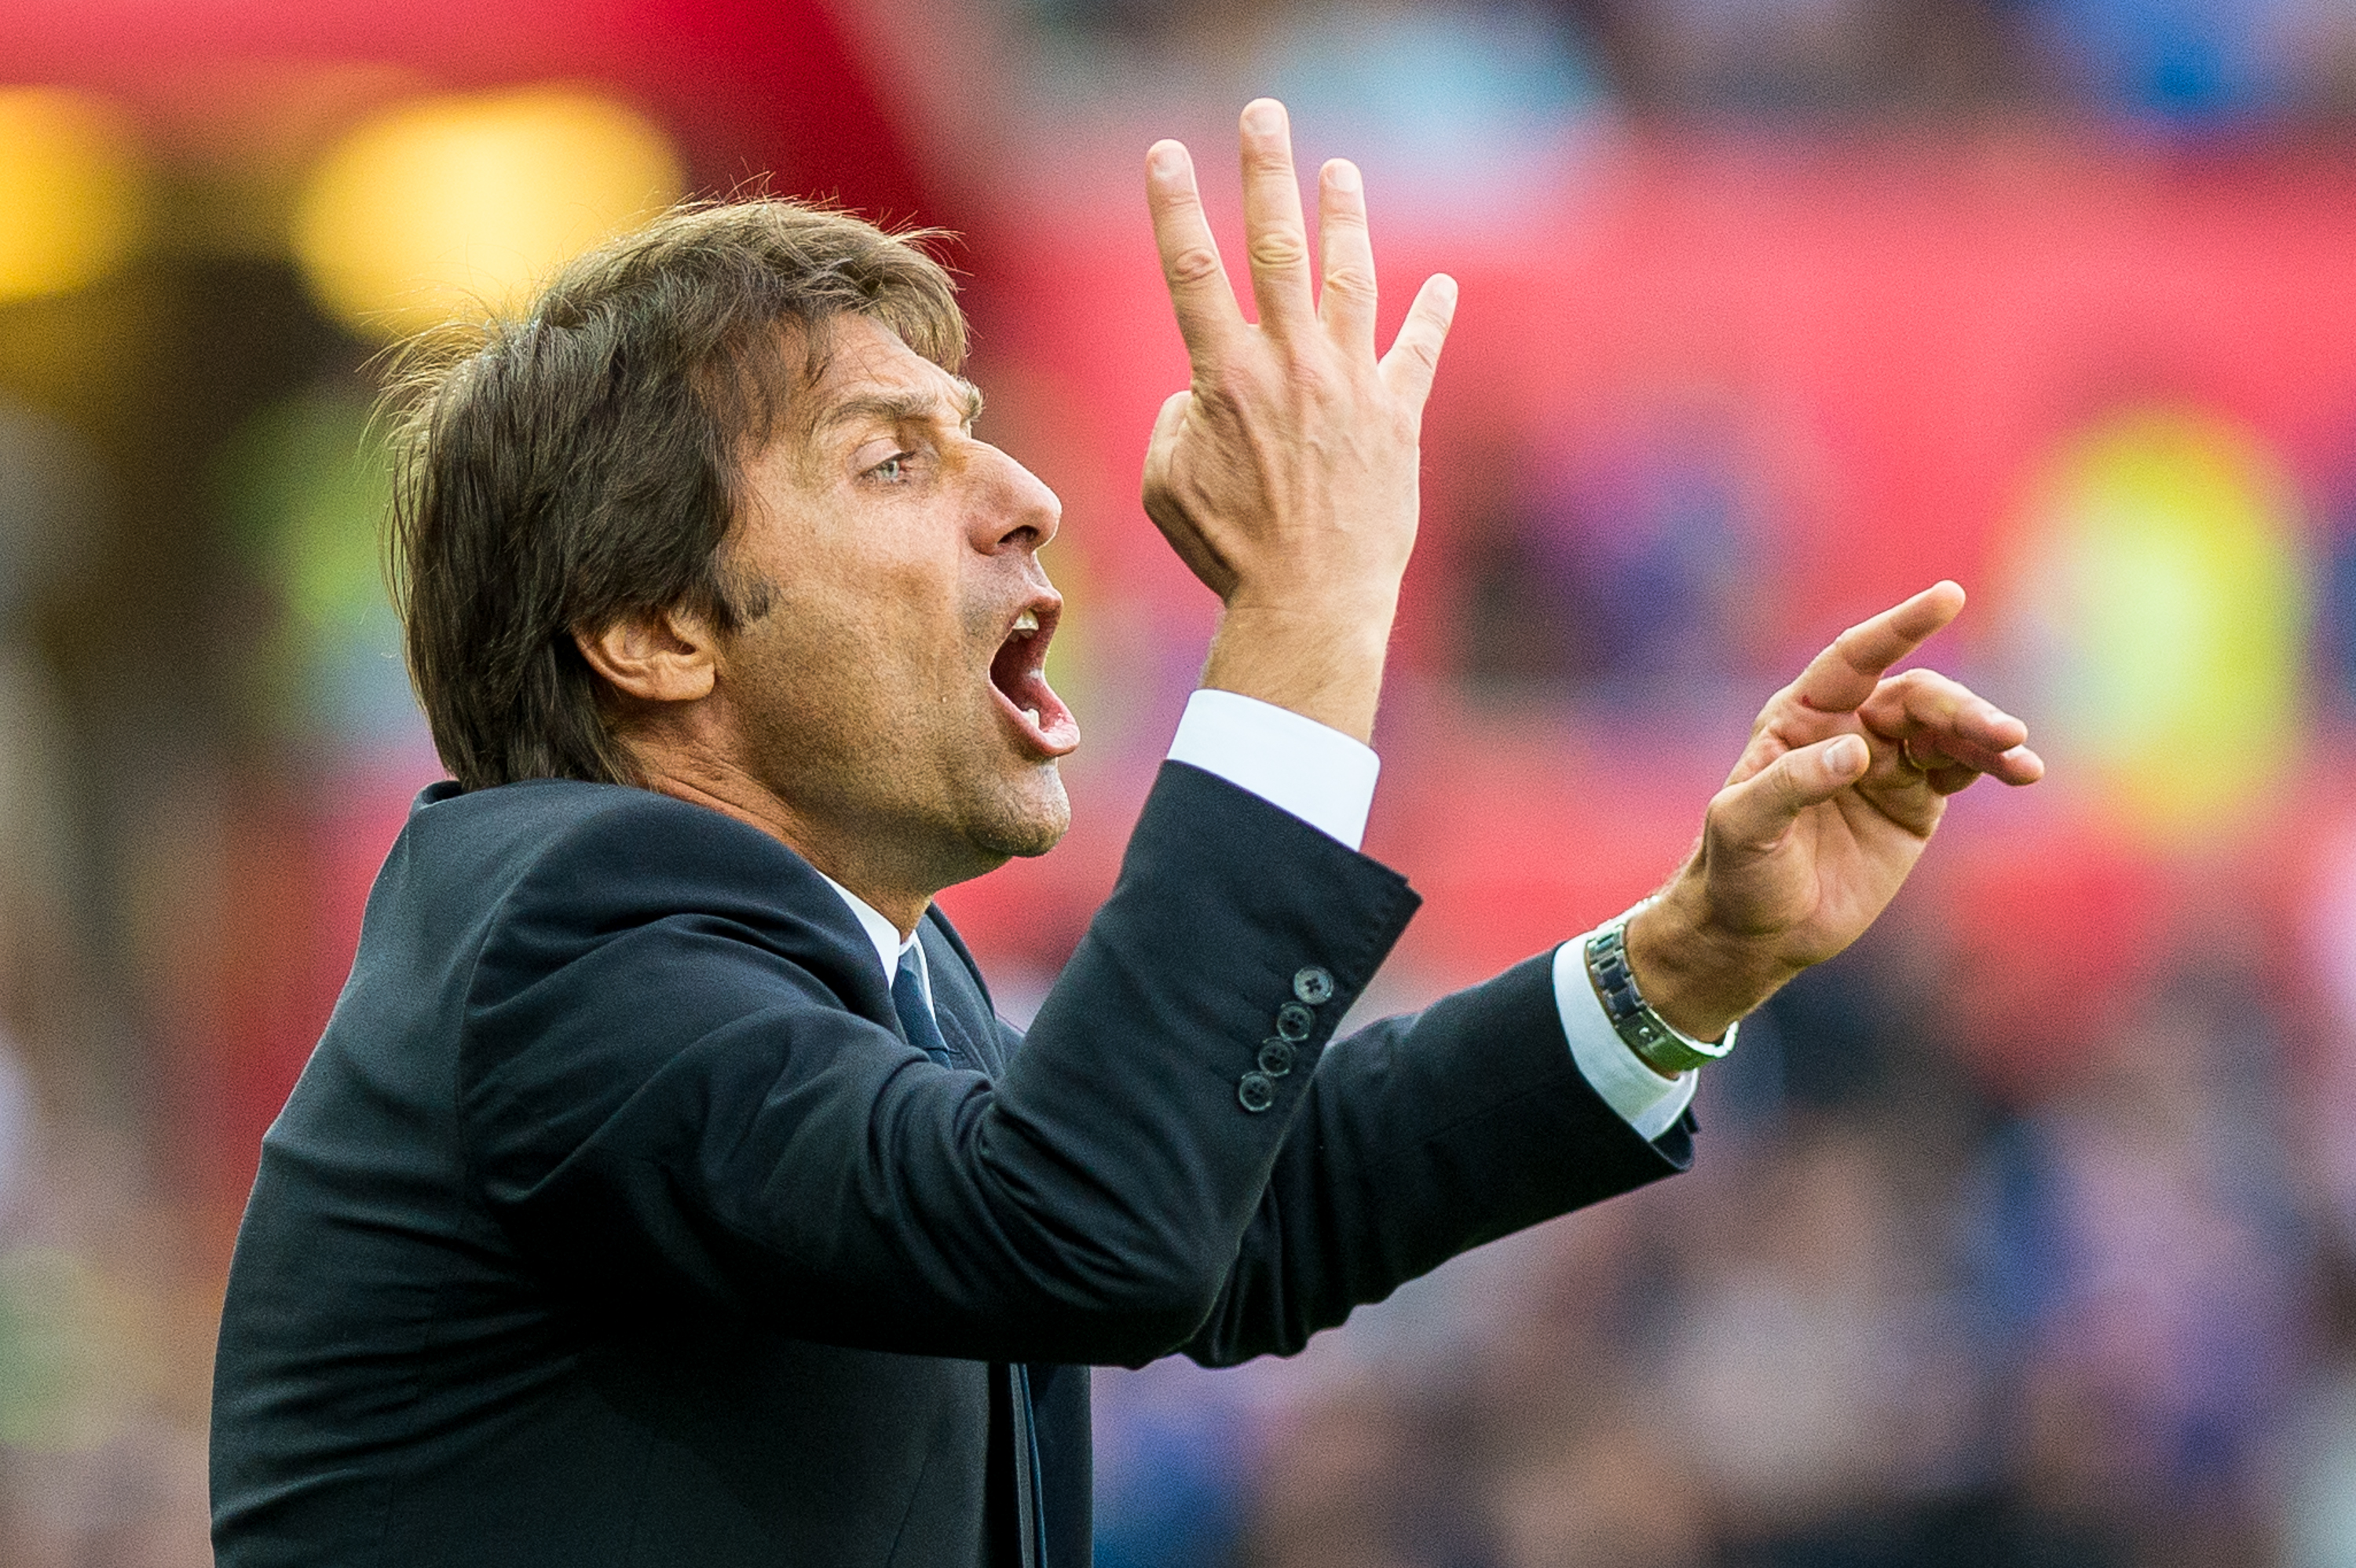 Antonio Conte admits he has held discussions with Chelsea owner Roman Abramovich